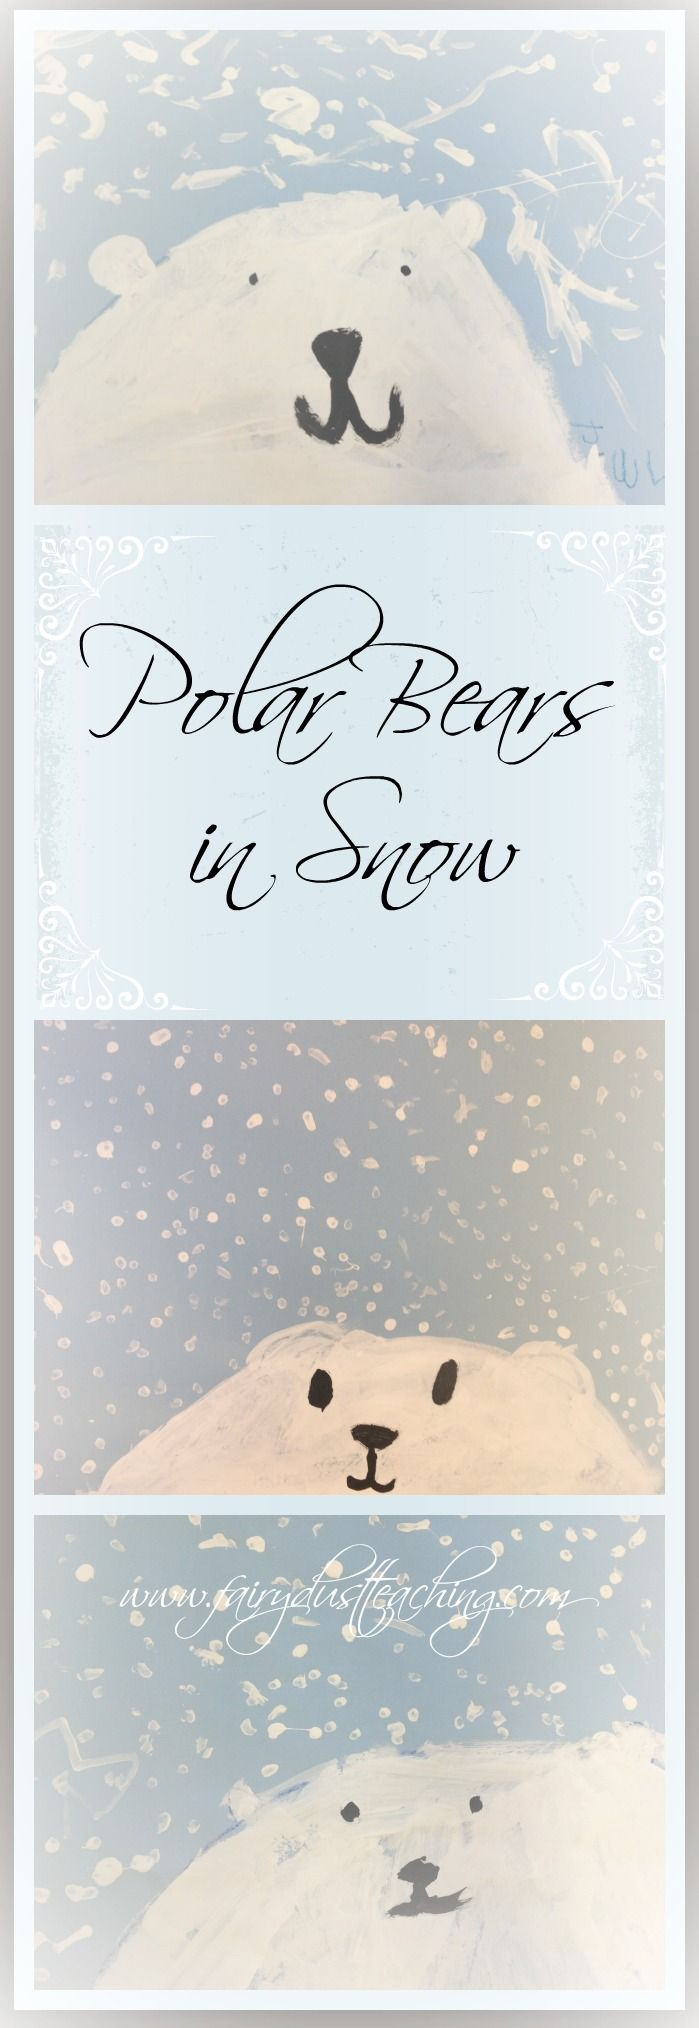 Polar Bears in Snow Art Project! Get the step-by-step how to from Fairy Dust Teaching.